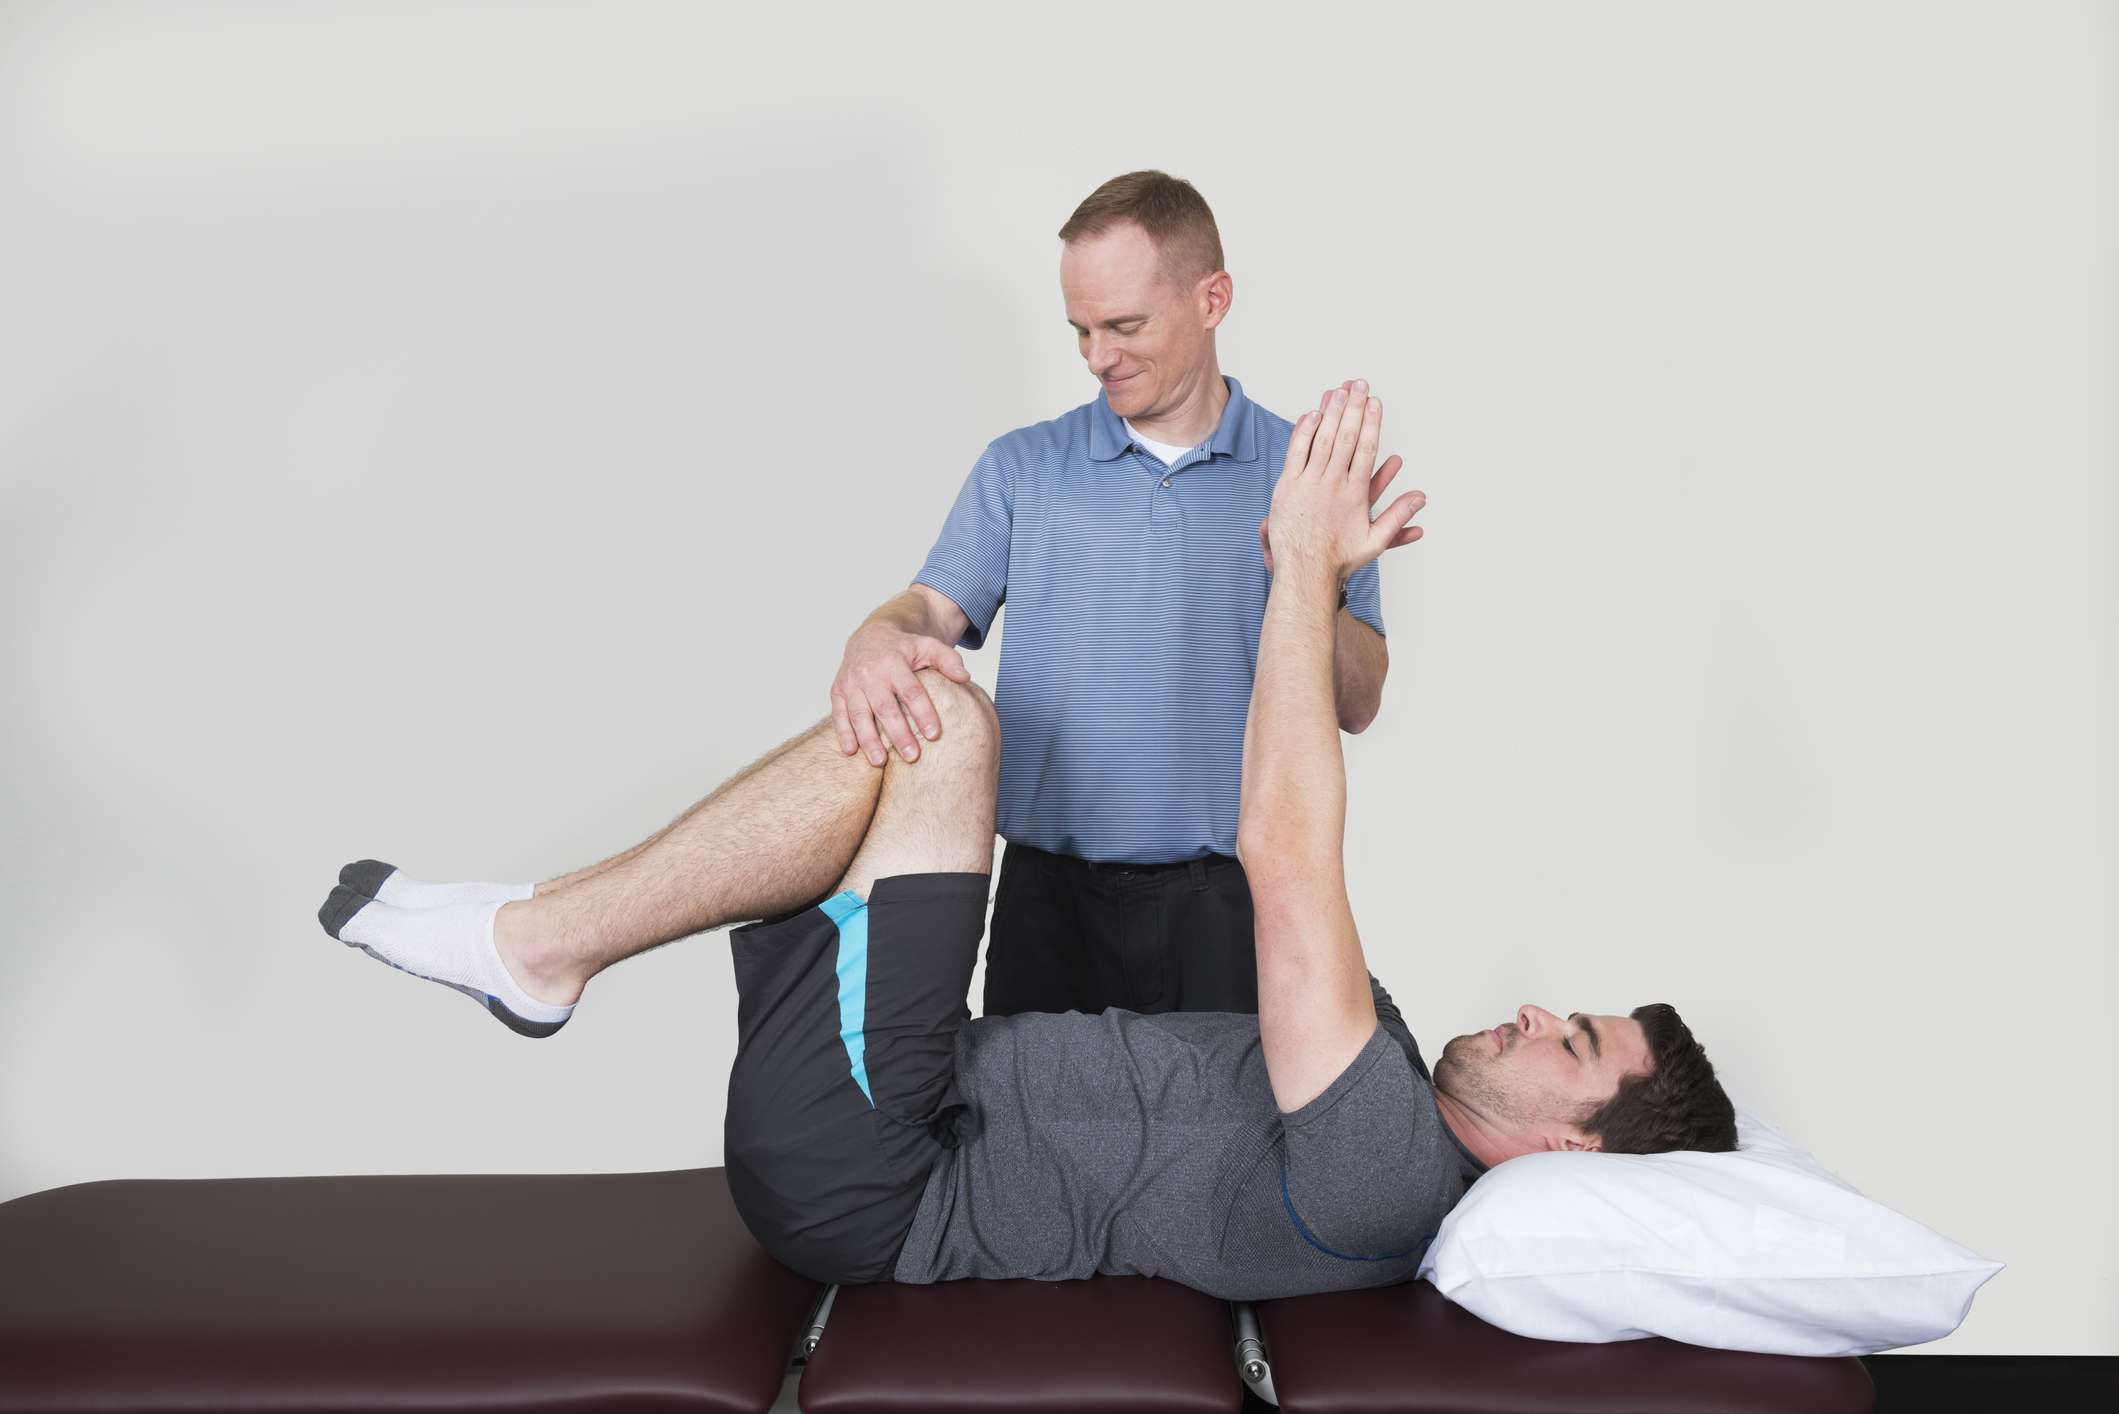 physical therapist assisting man with core exercise